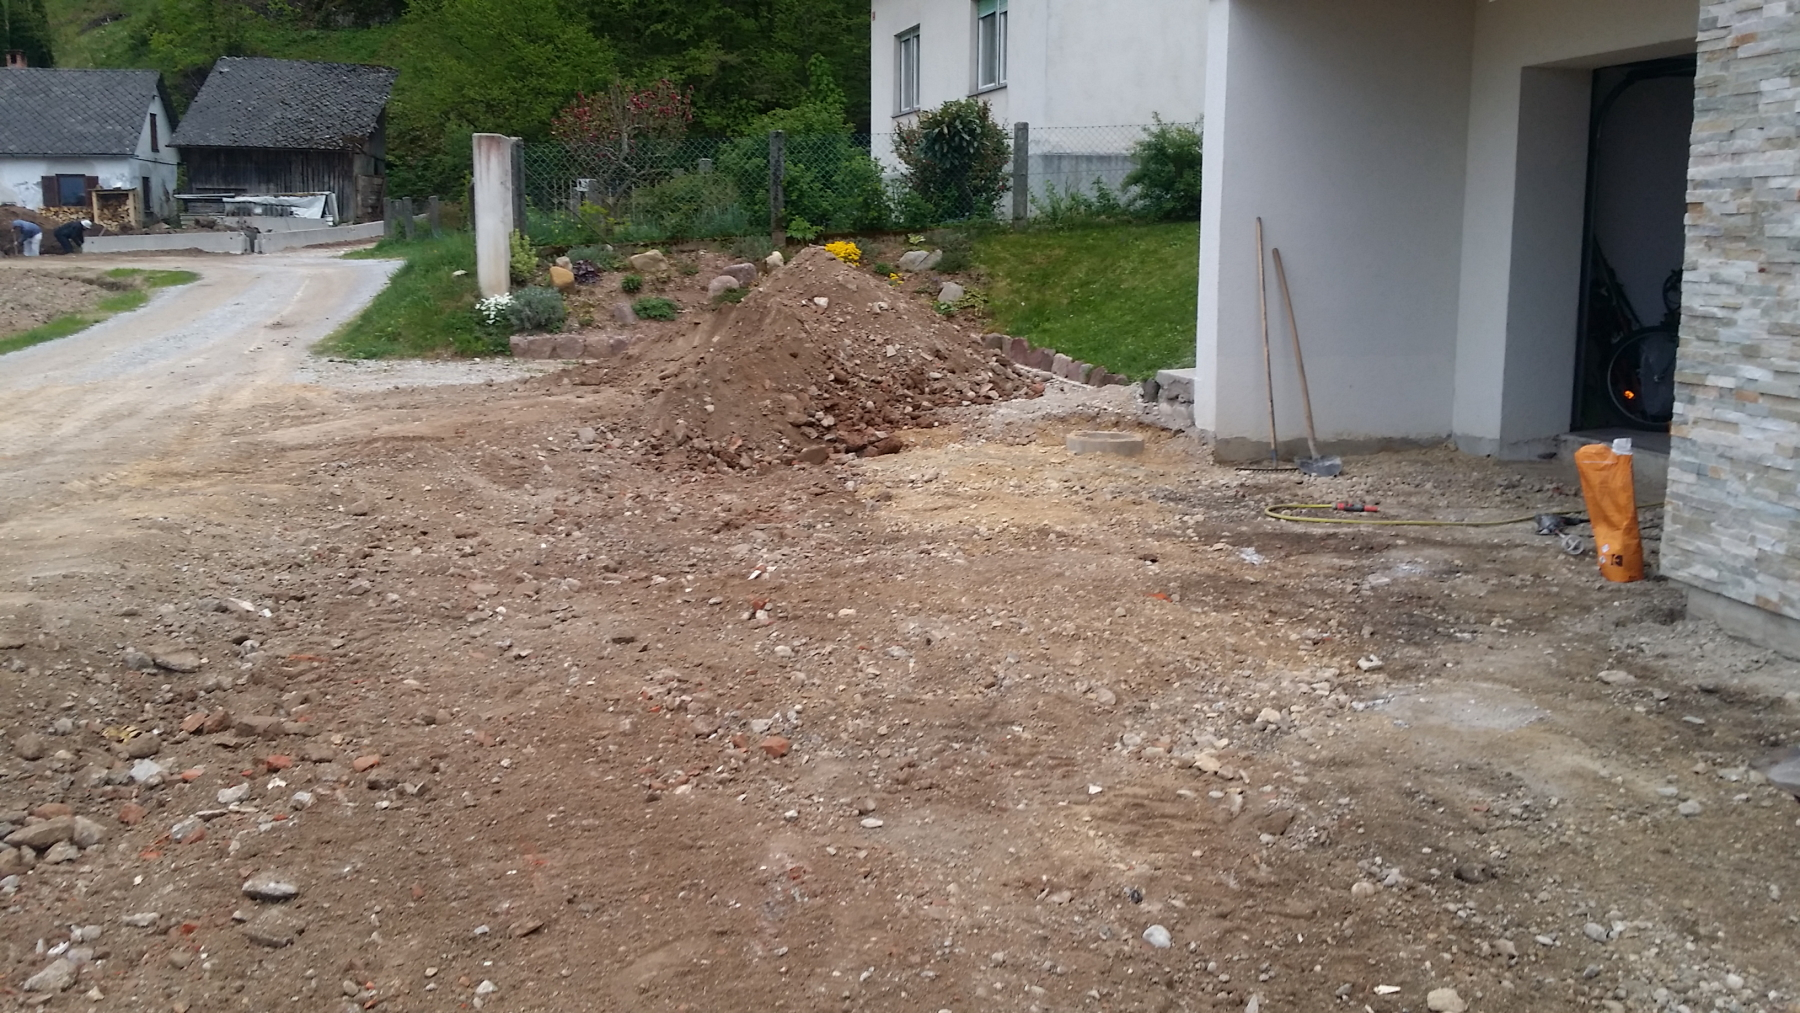 Works on new courtyard of Domovoj2